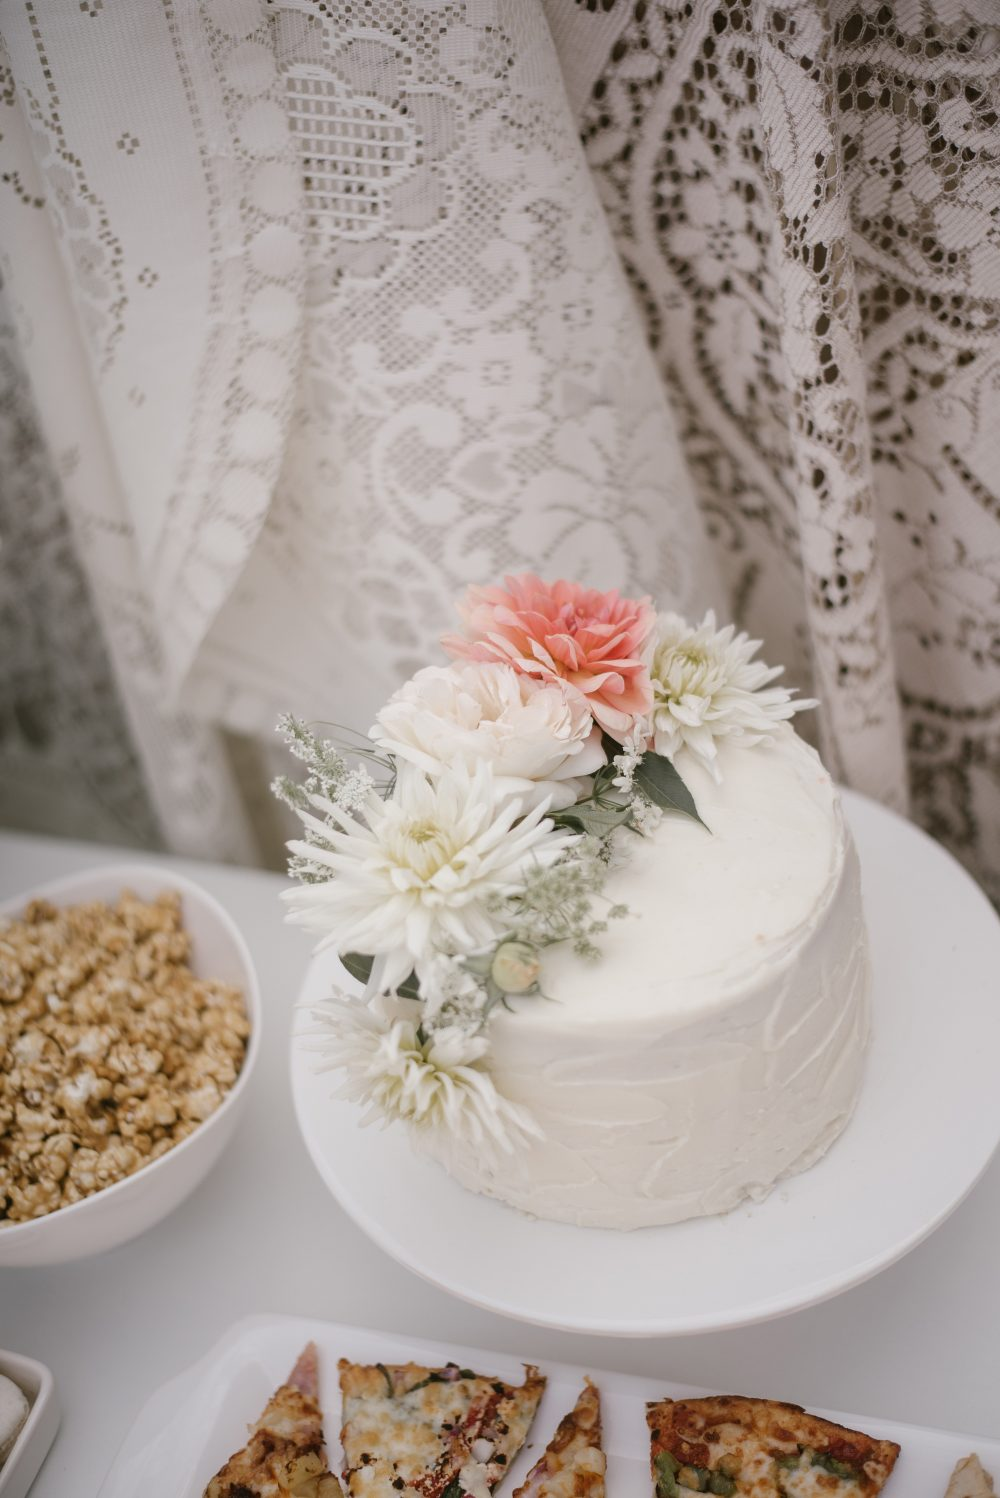 White floral cake at lace and boho baby shower | White Boho Baby Shower